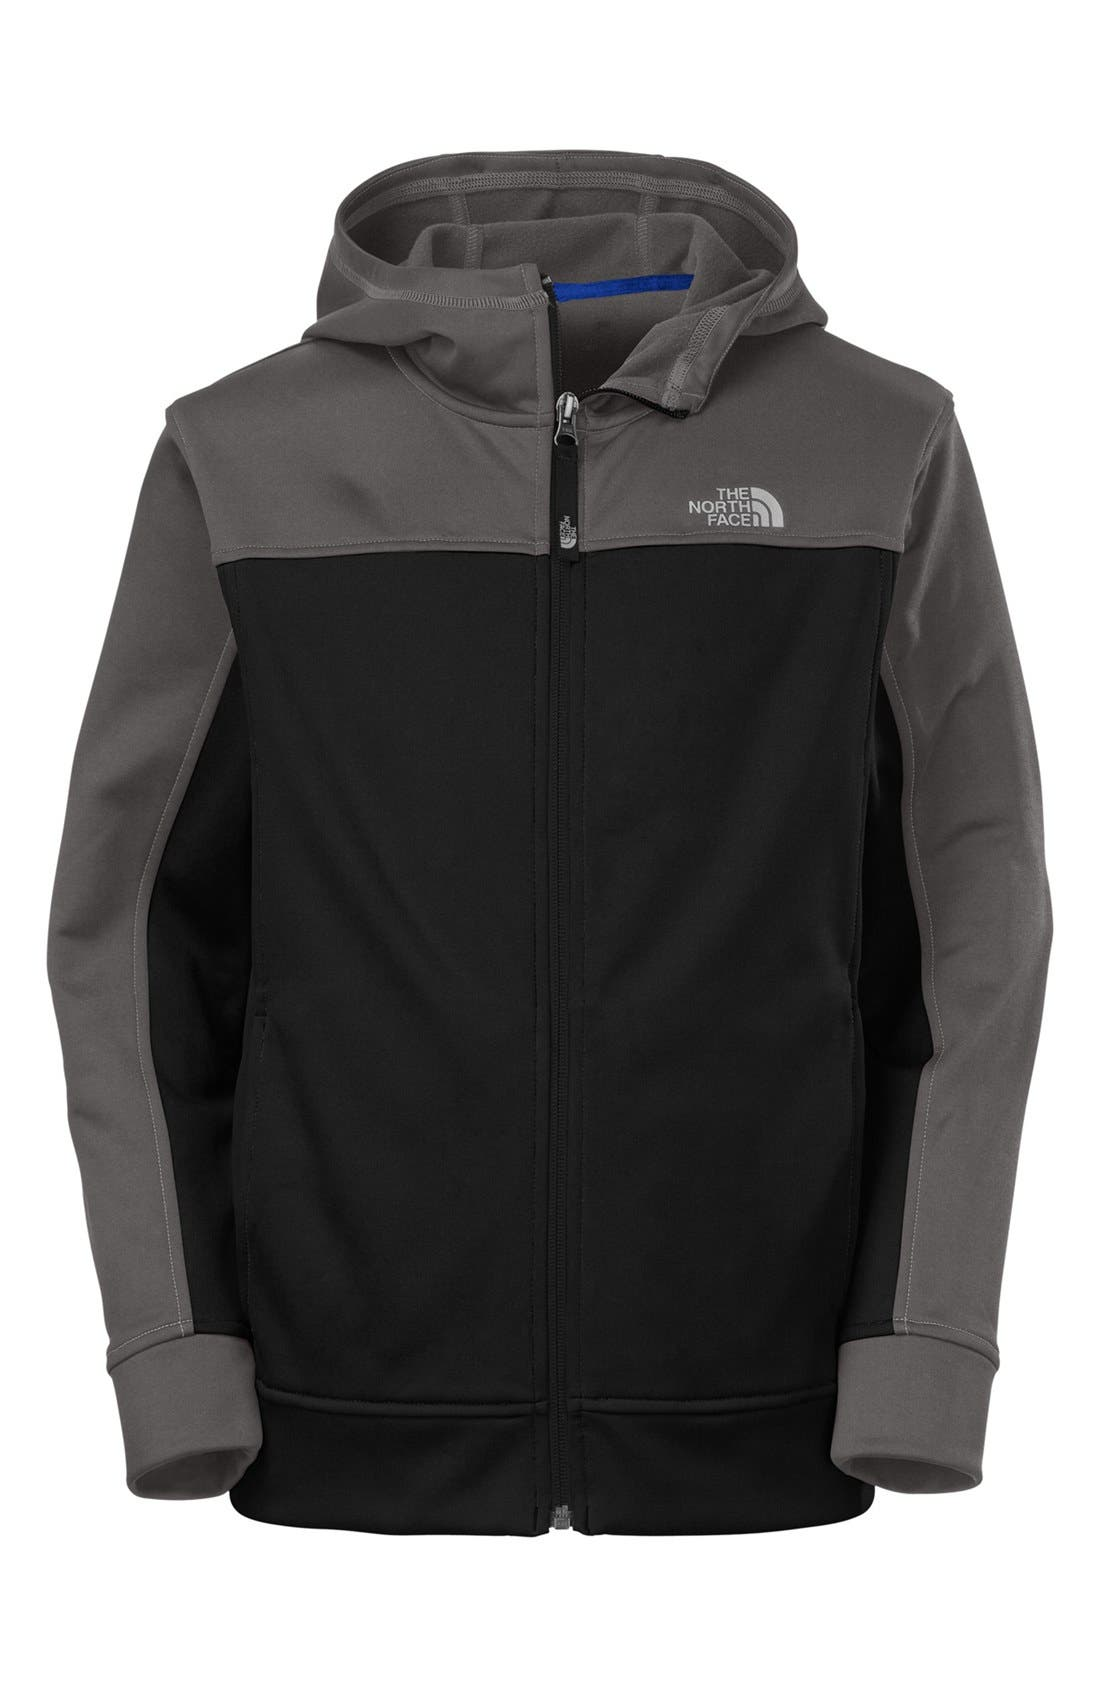 Alternate Image 1 Selected - The North Face 'Surgent' Full Zip Hoodie with Reflective Detailing (Big Boys)